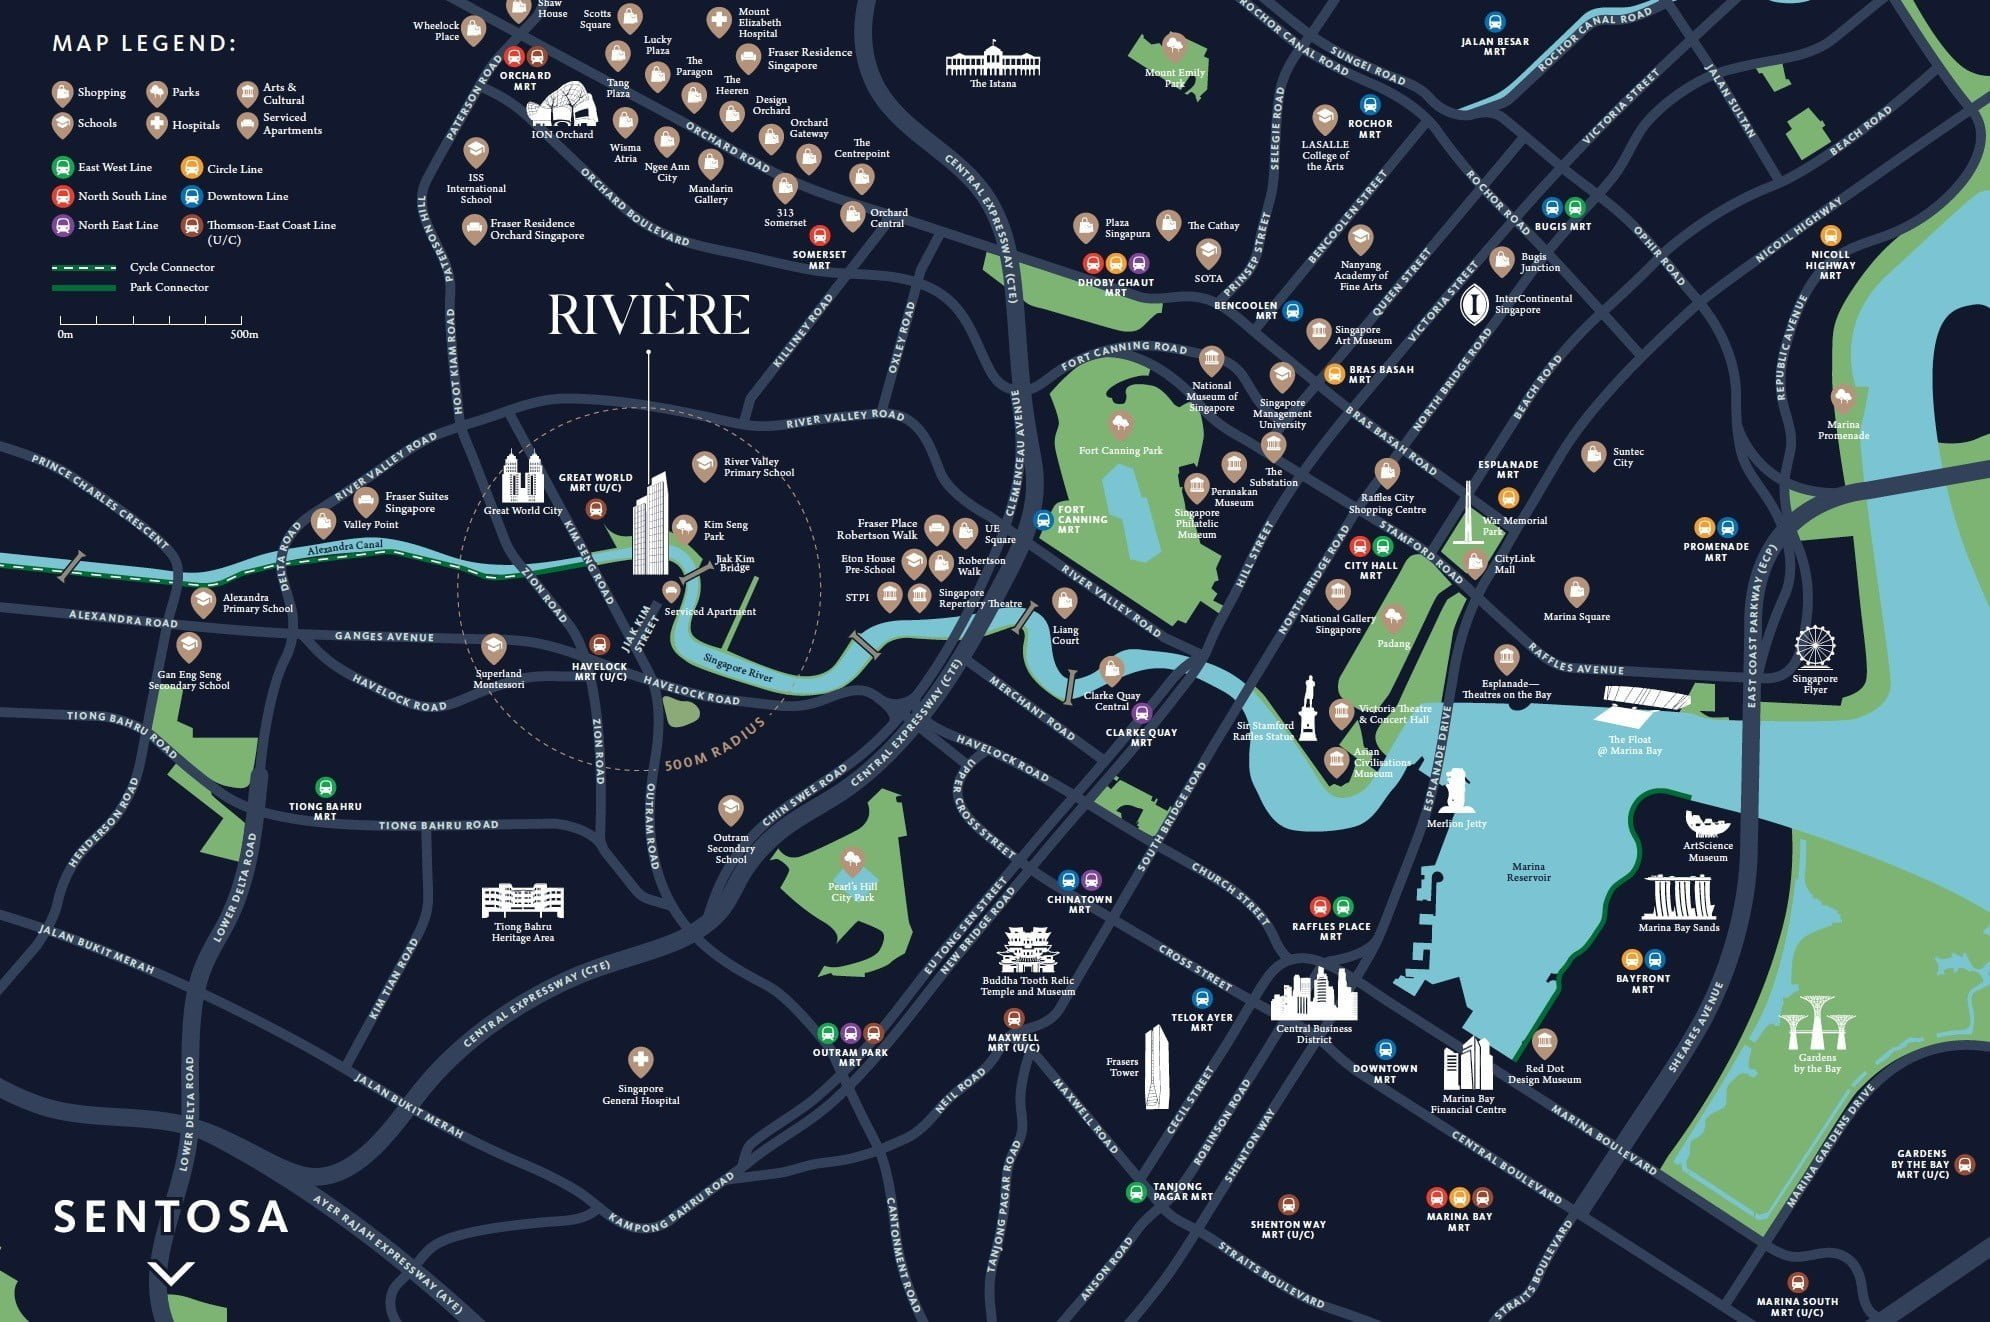 Riviere river valley location map